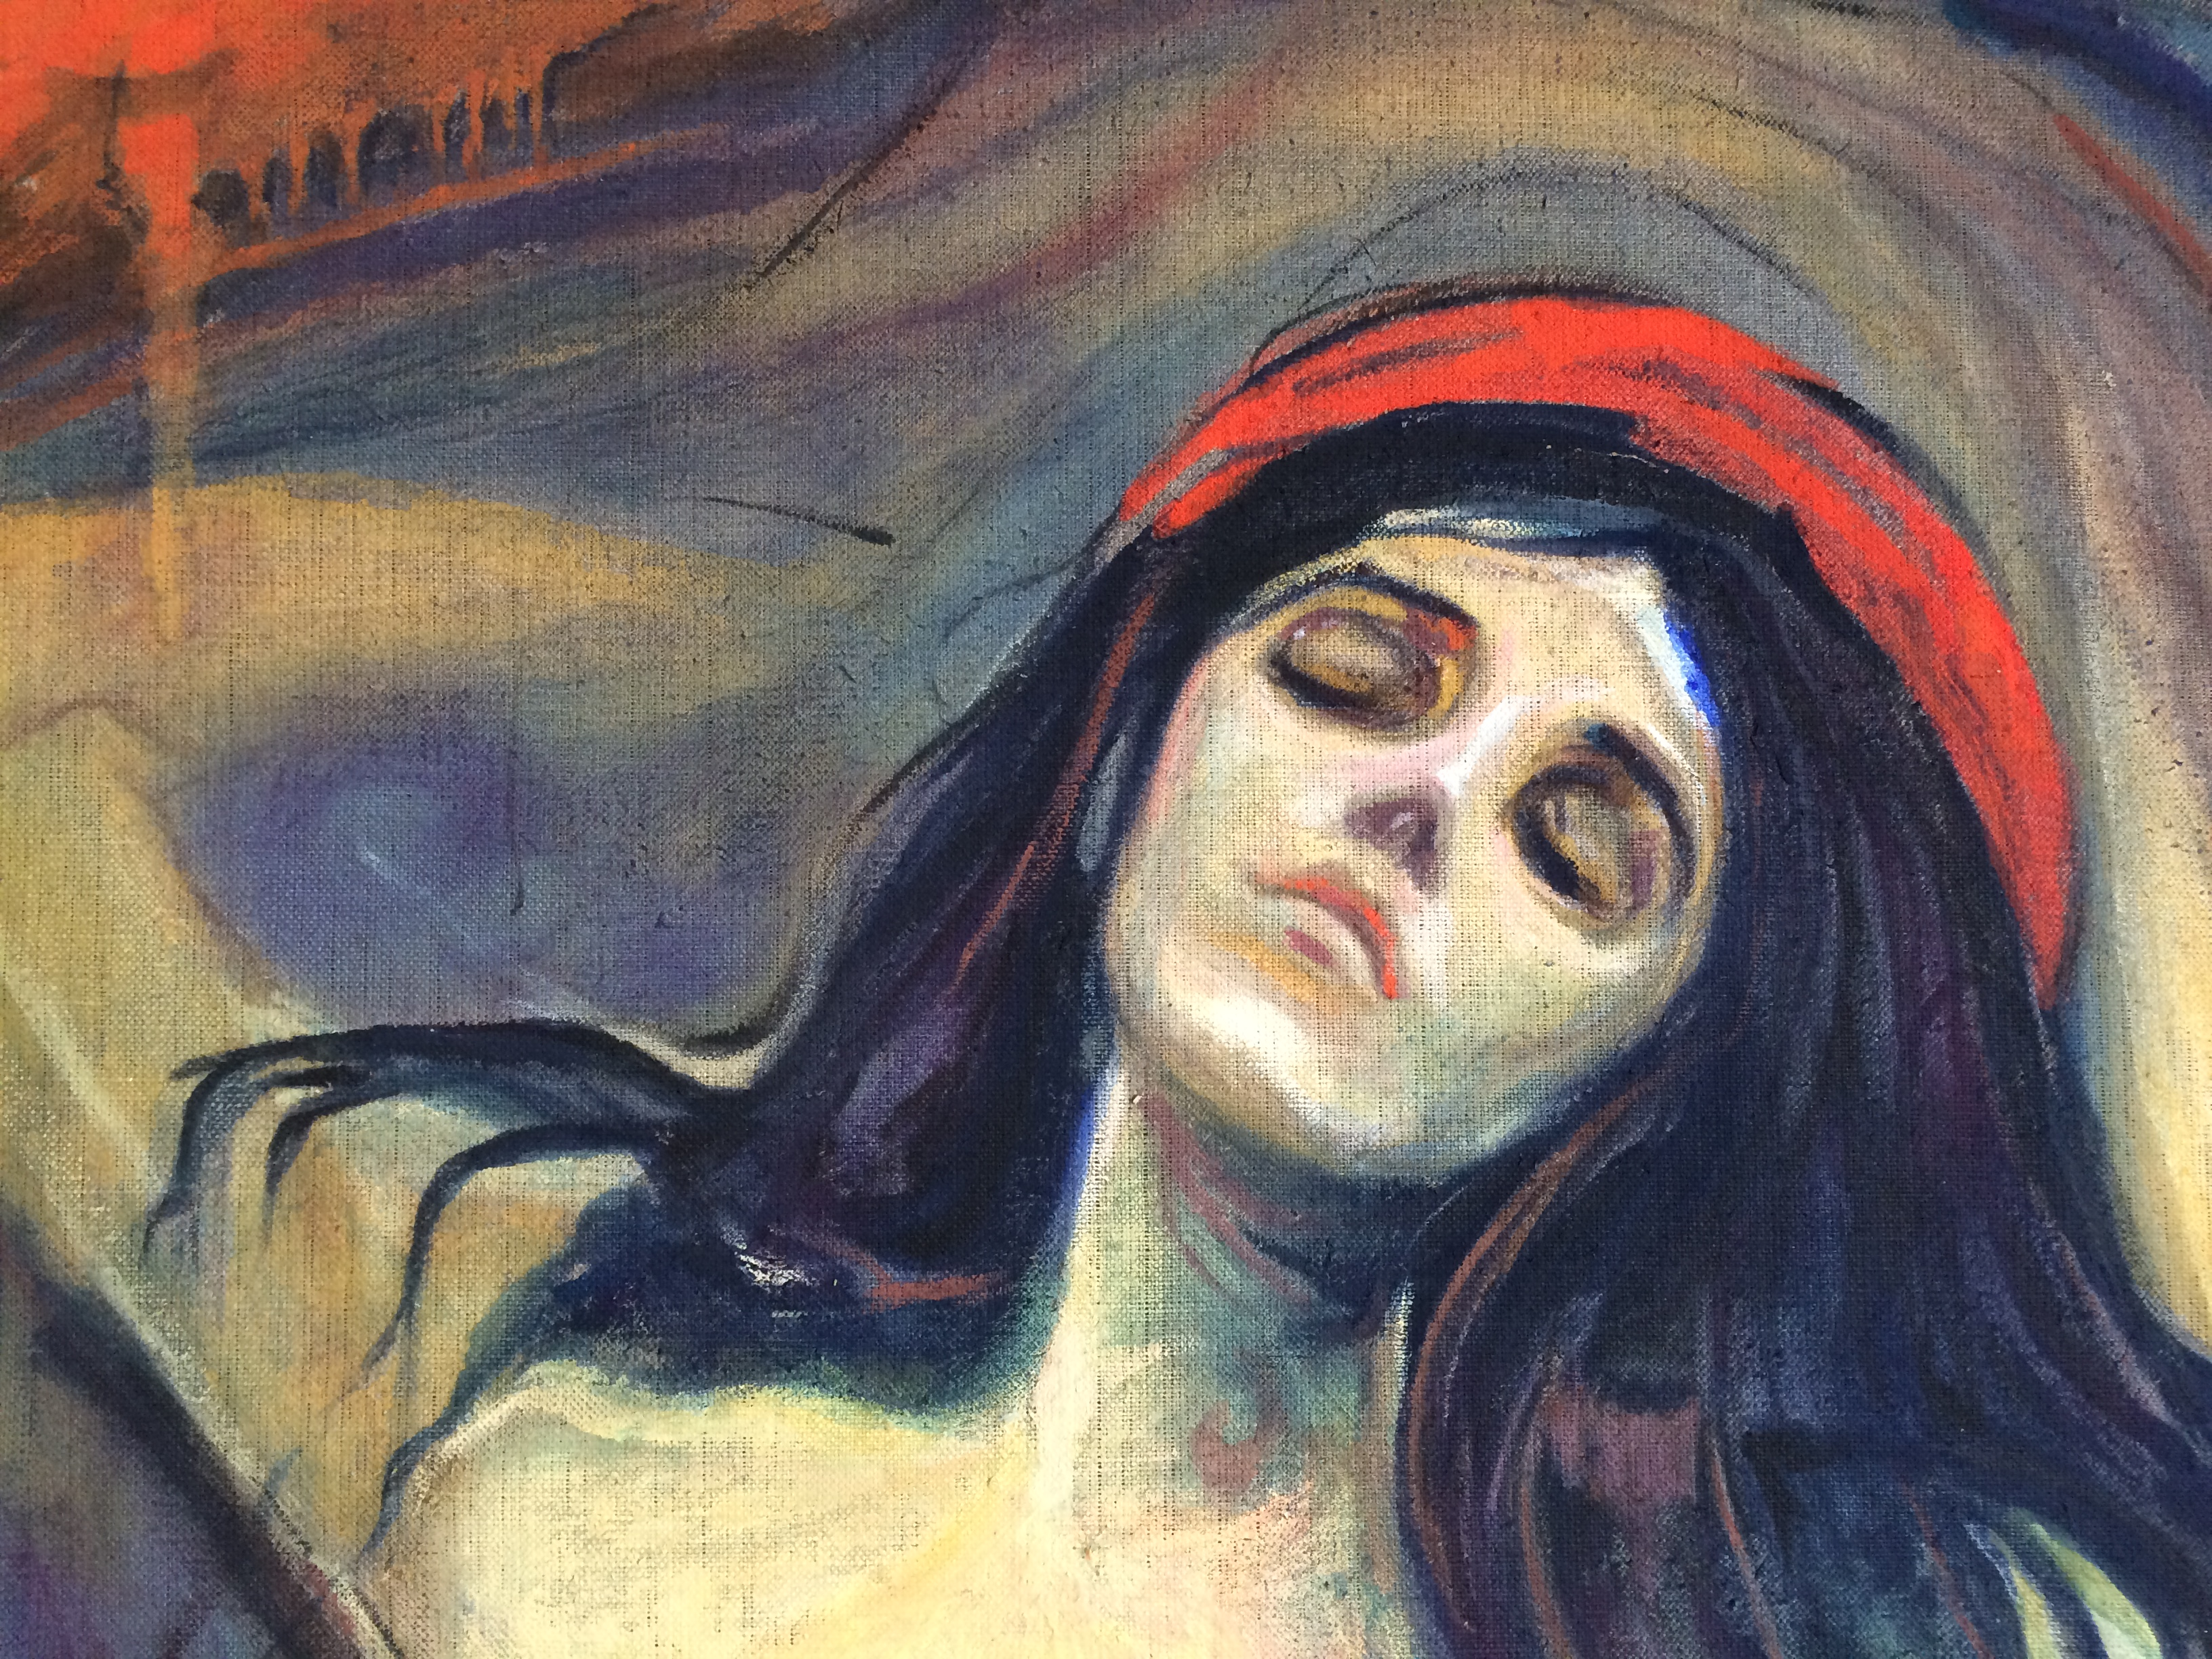 Reproduktion - Orig. von E. Munch